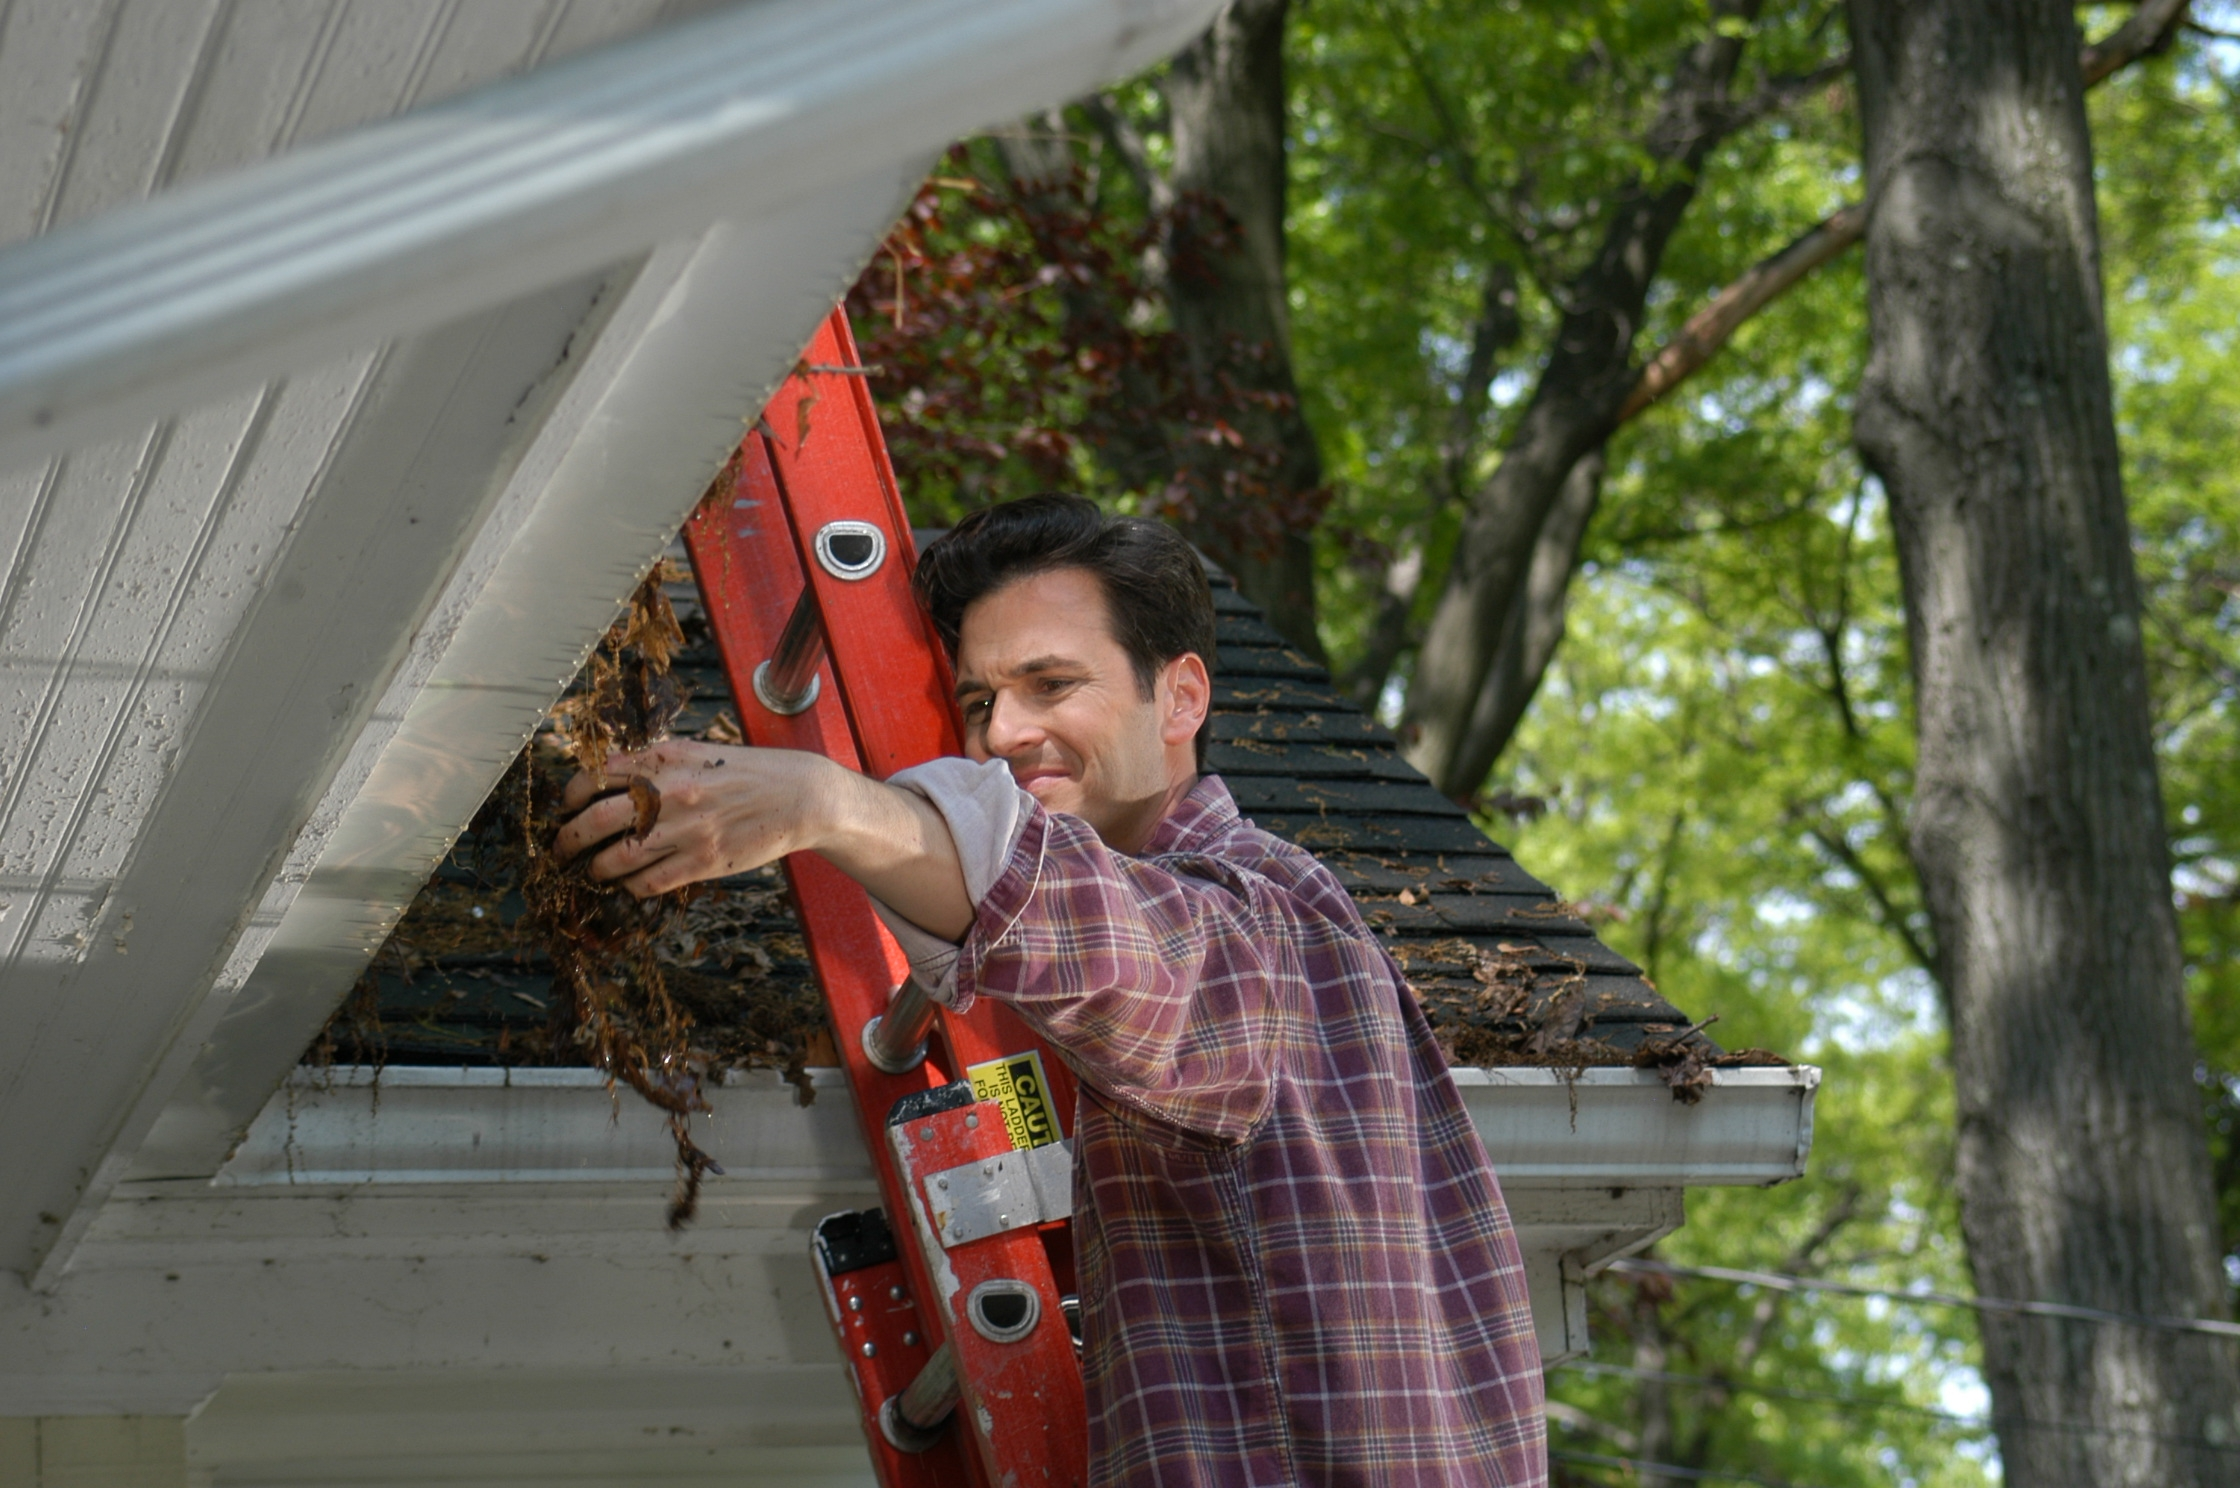 What S Worse For Gutters Spring Debris Or Fall Leaves